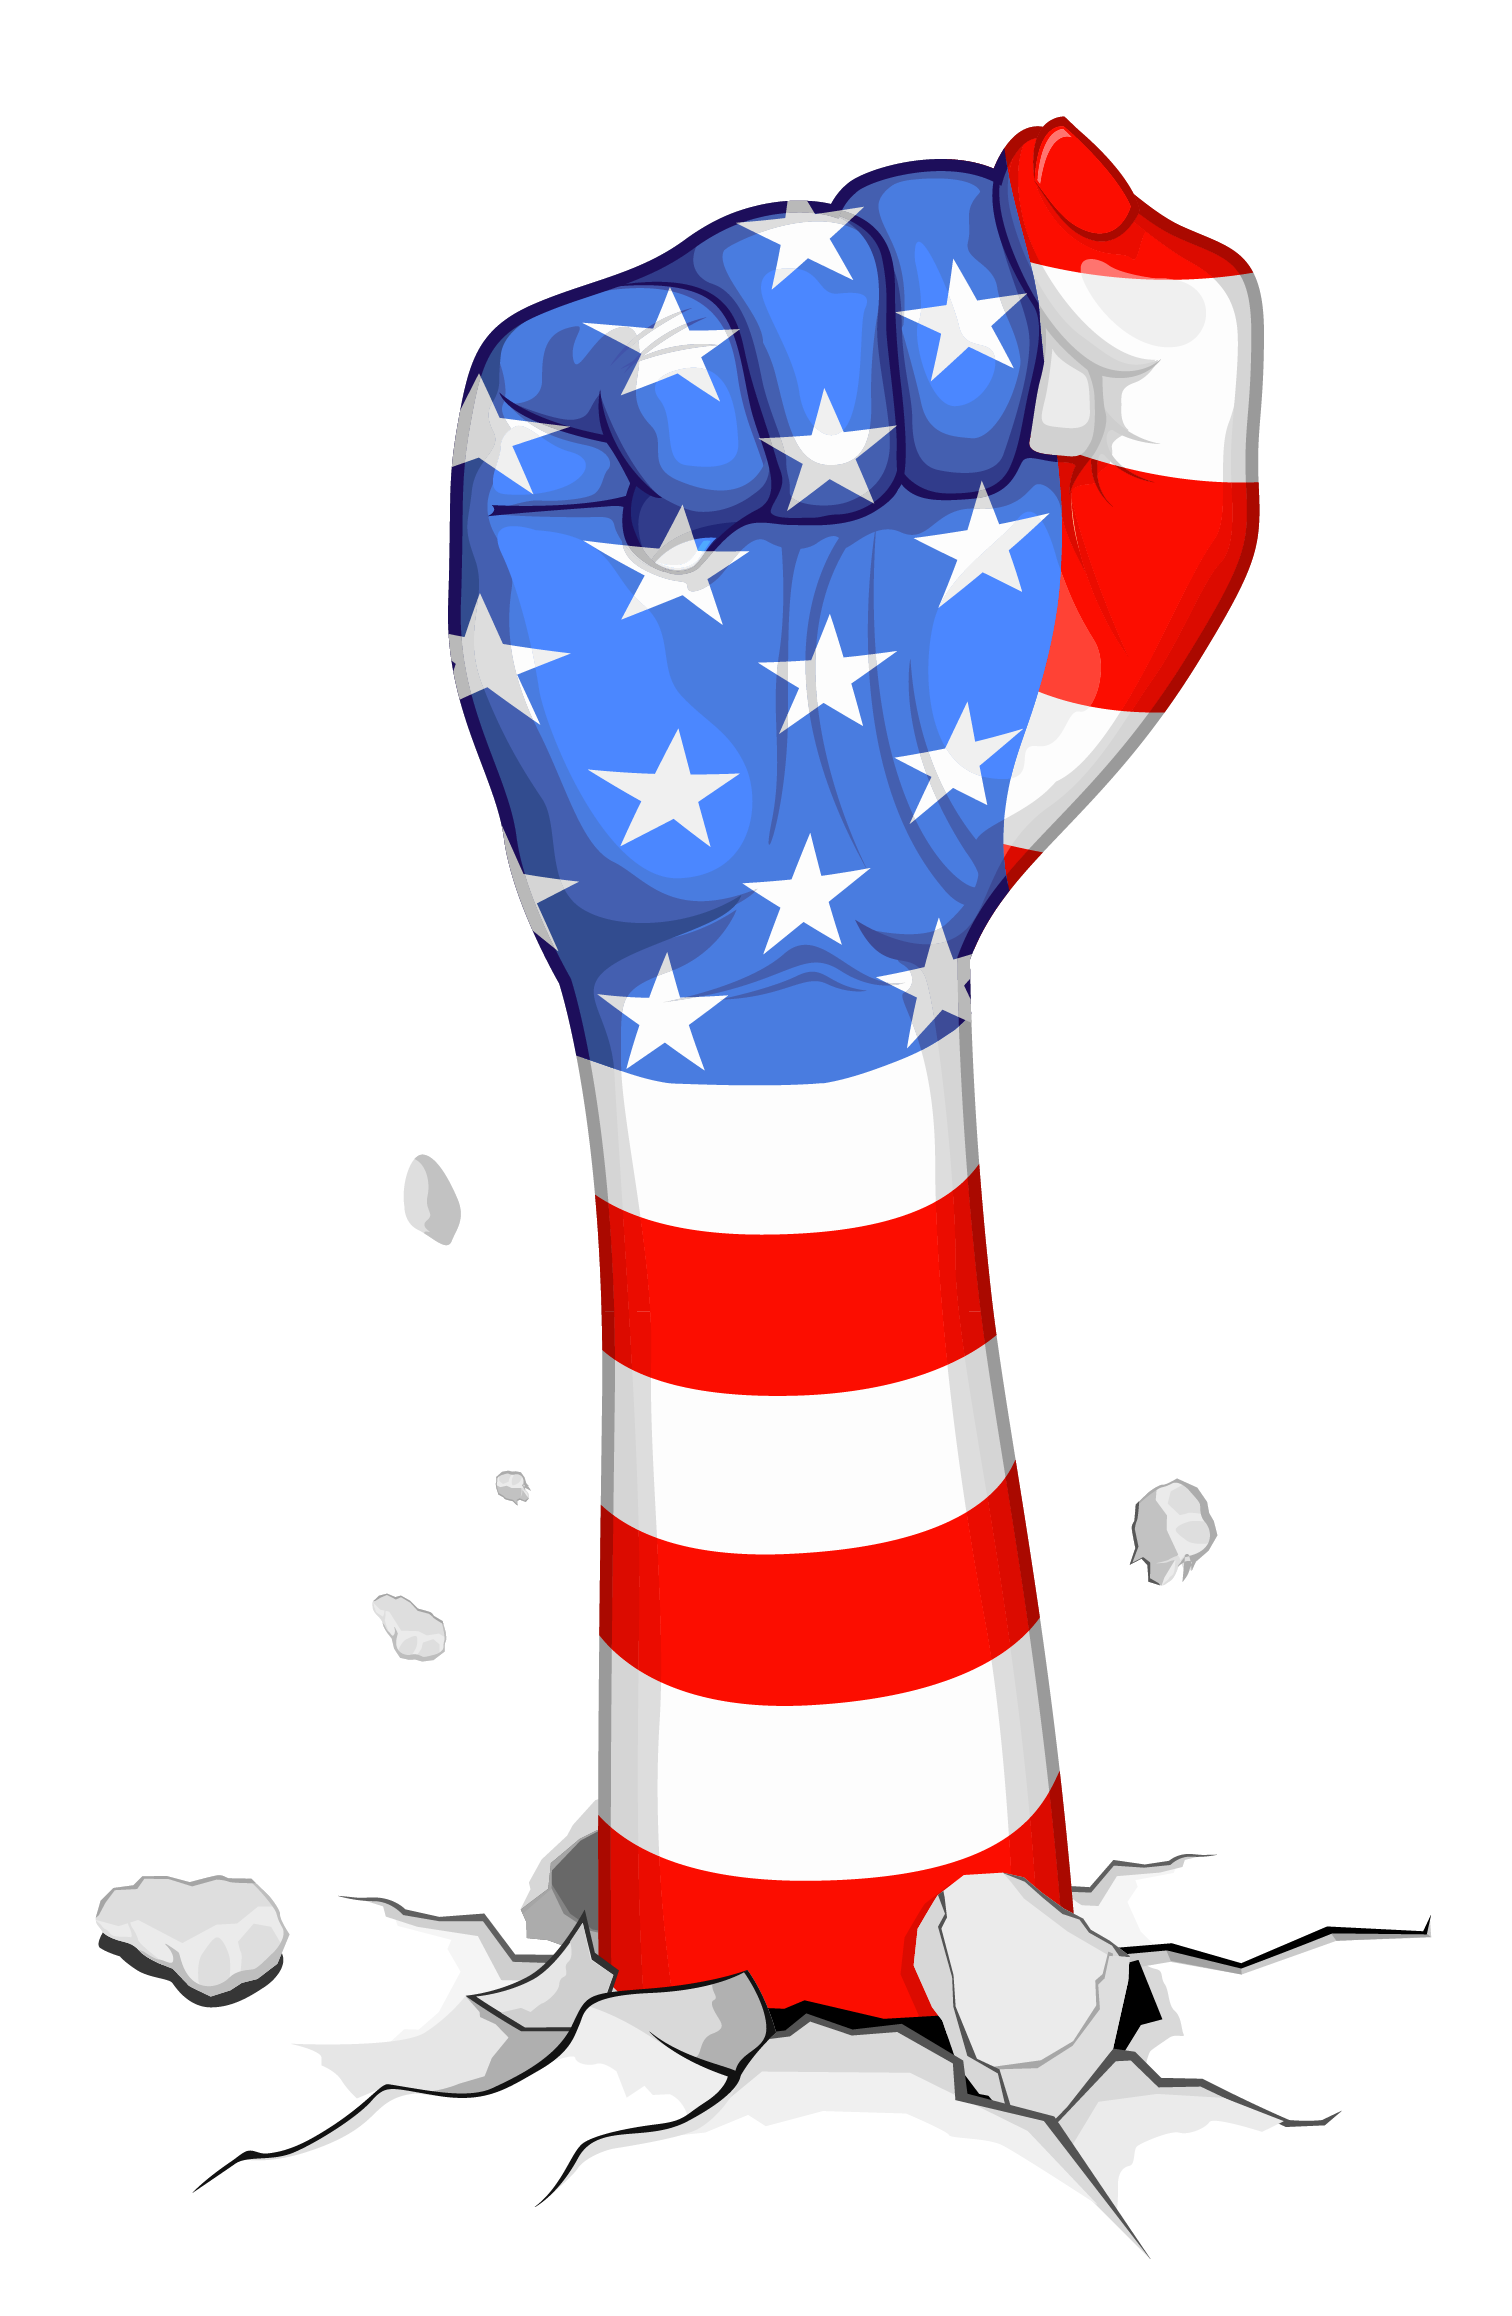 Red white and blue cross clipart picture royalty free library 4th of July Flag Clip Art | 4th july png a... | Red White And Blue ... picture royalty free library